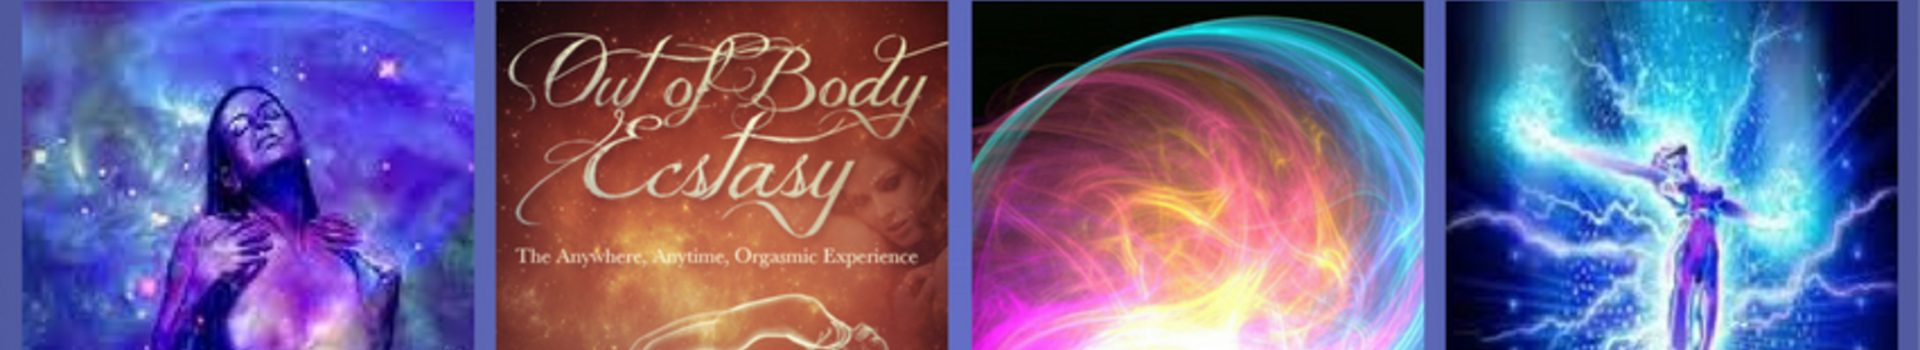 OBE Sex: What Is The Energy Body?